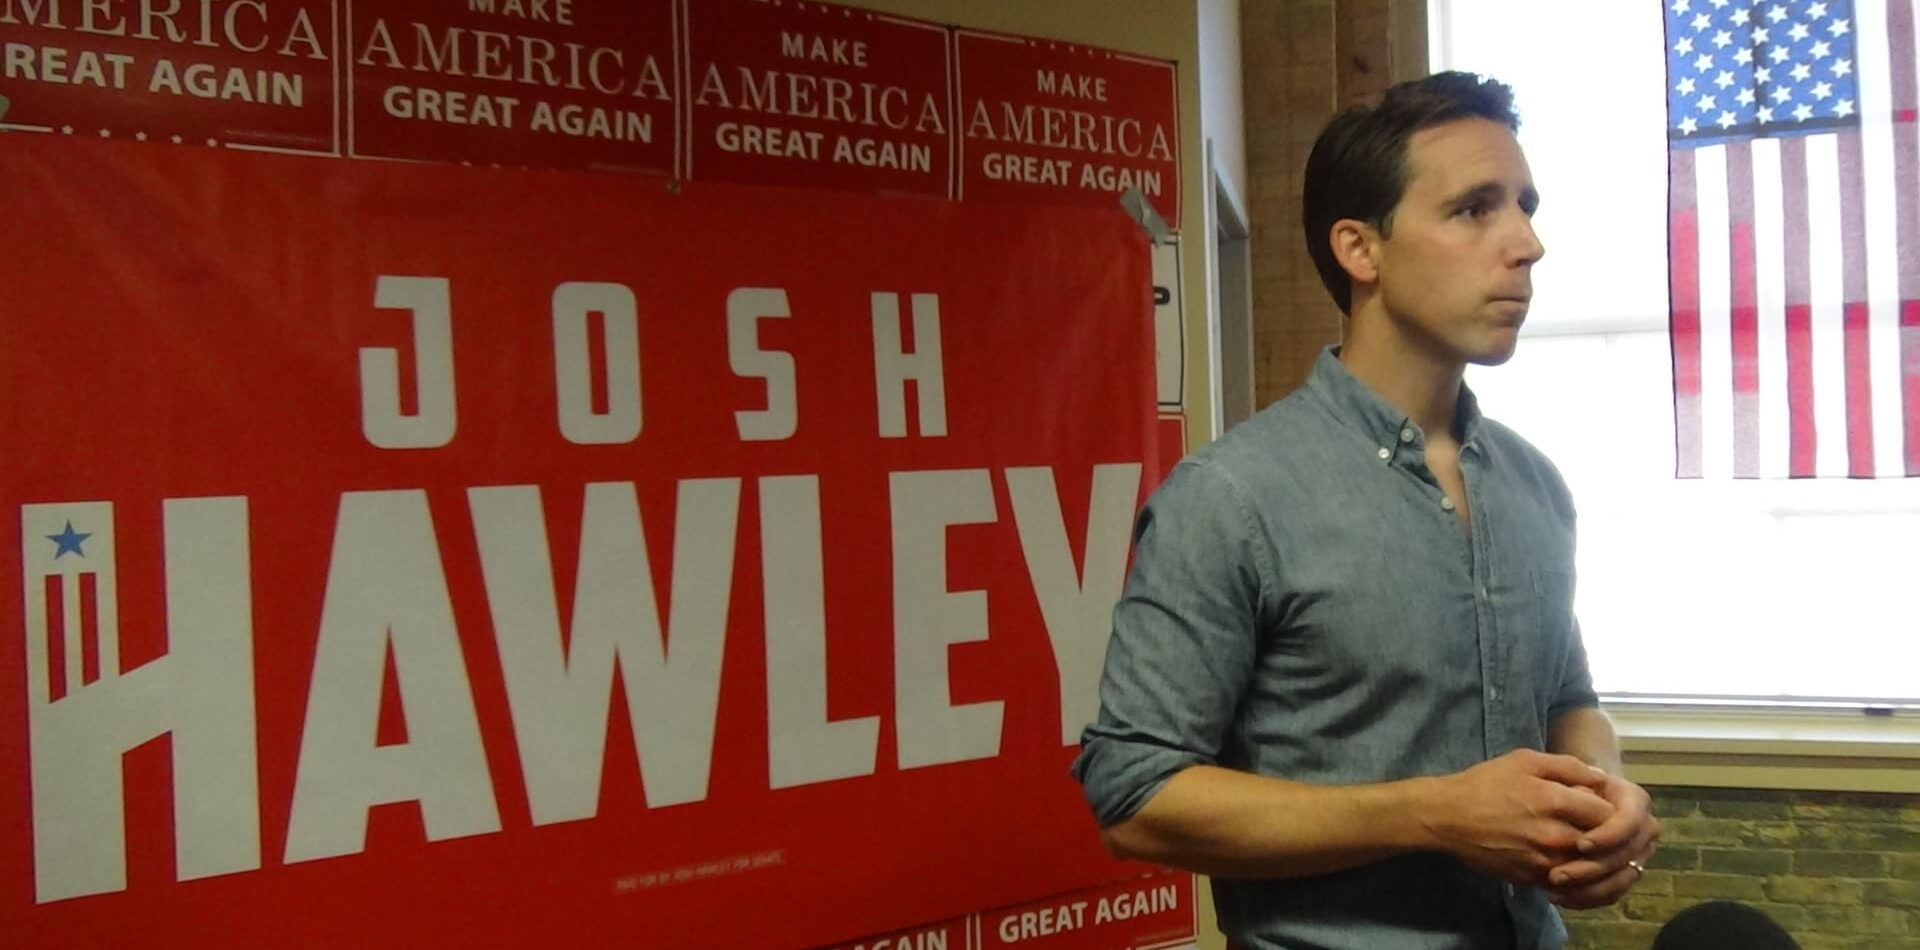 KC Star: Josh Hawley is the clear choice for Missouri Republicans in U.S. Senate primary